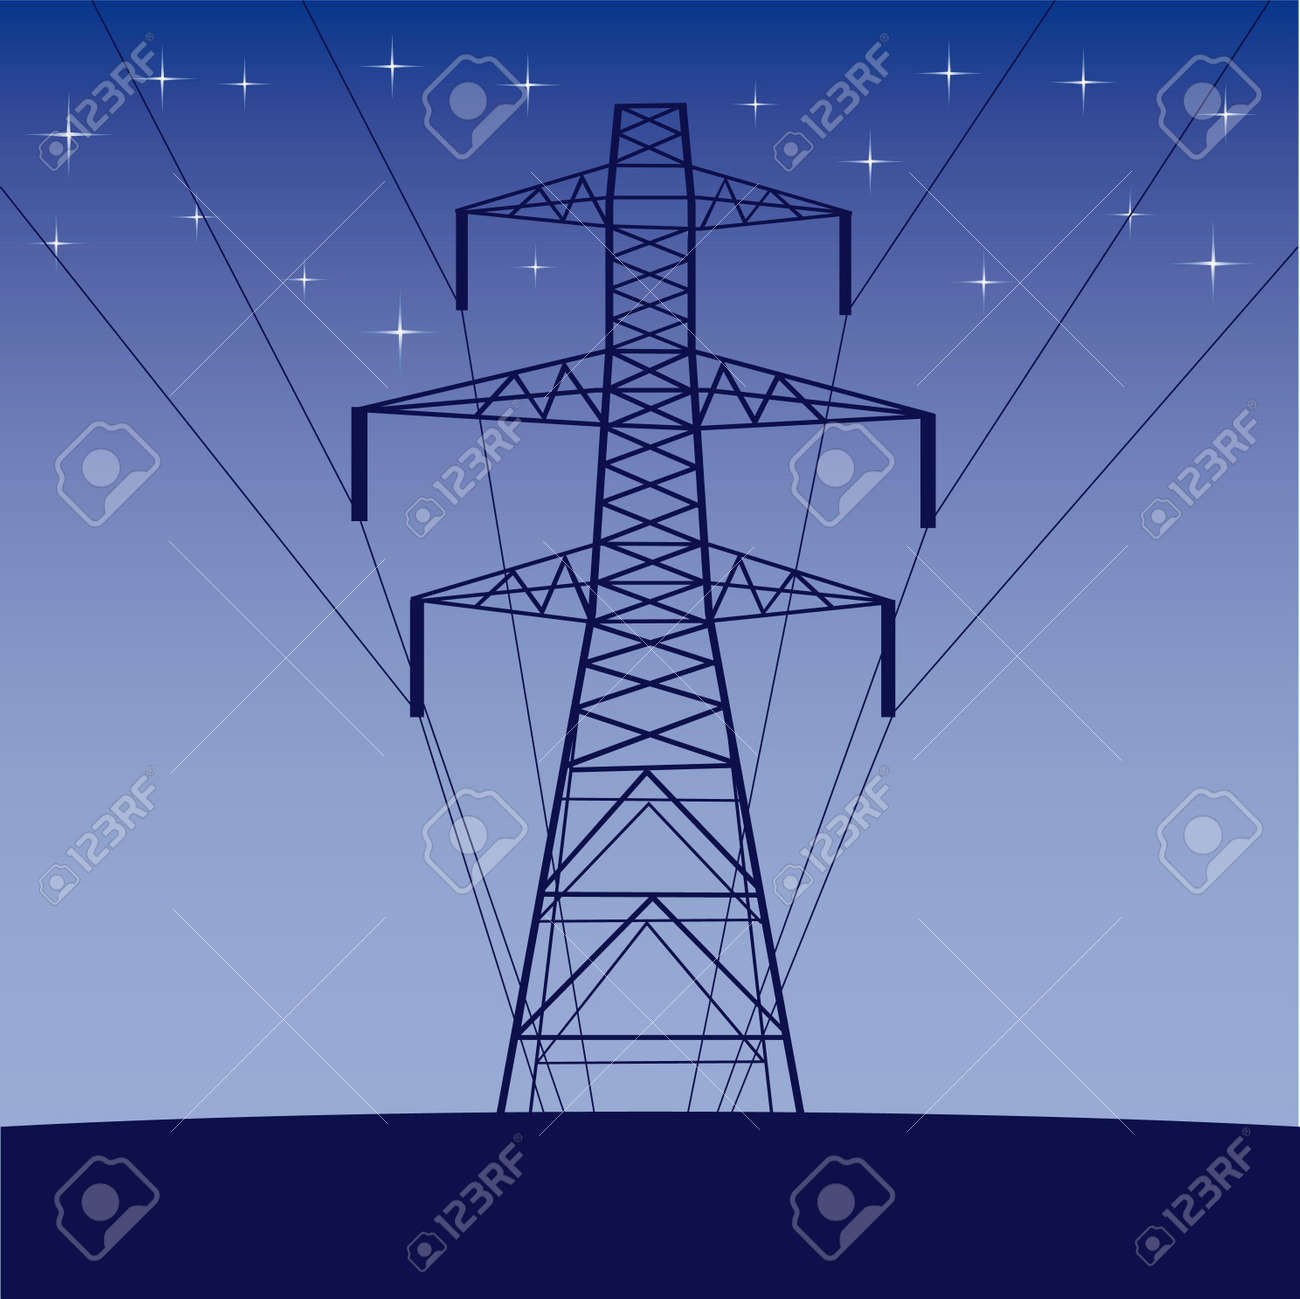 silhouette of high voltage electric line against blue sky - 6854792